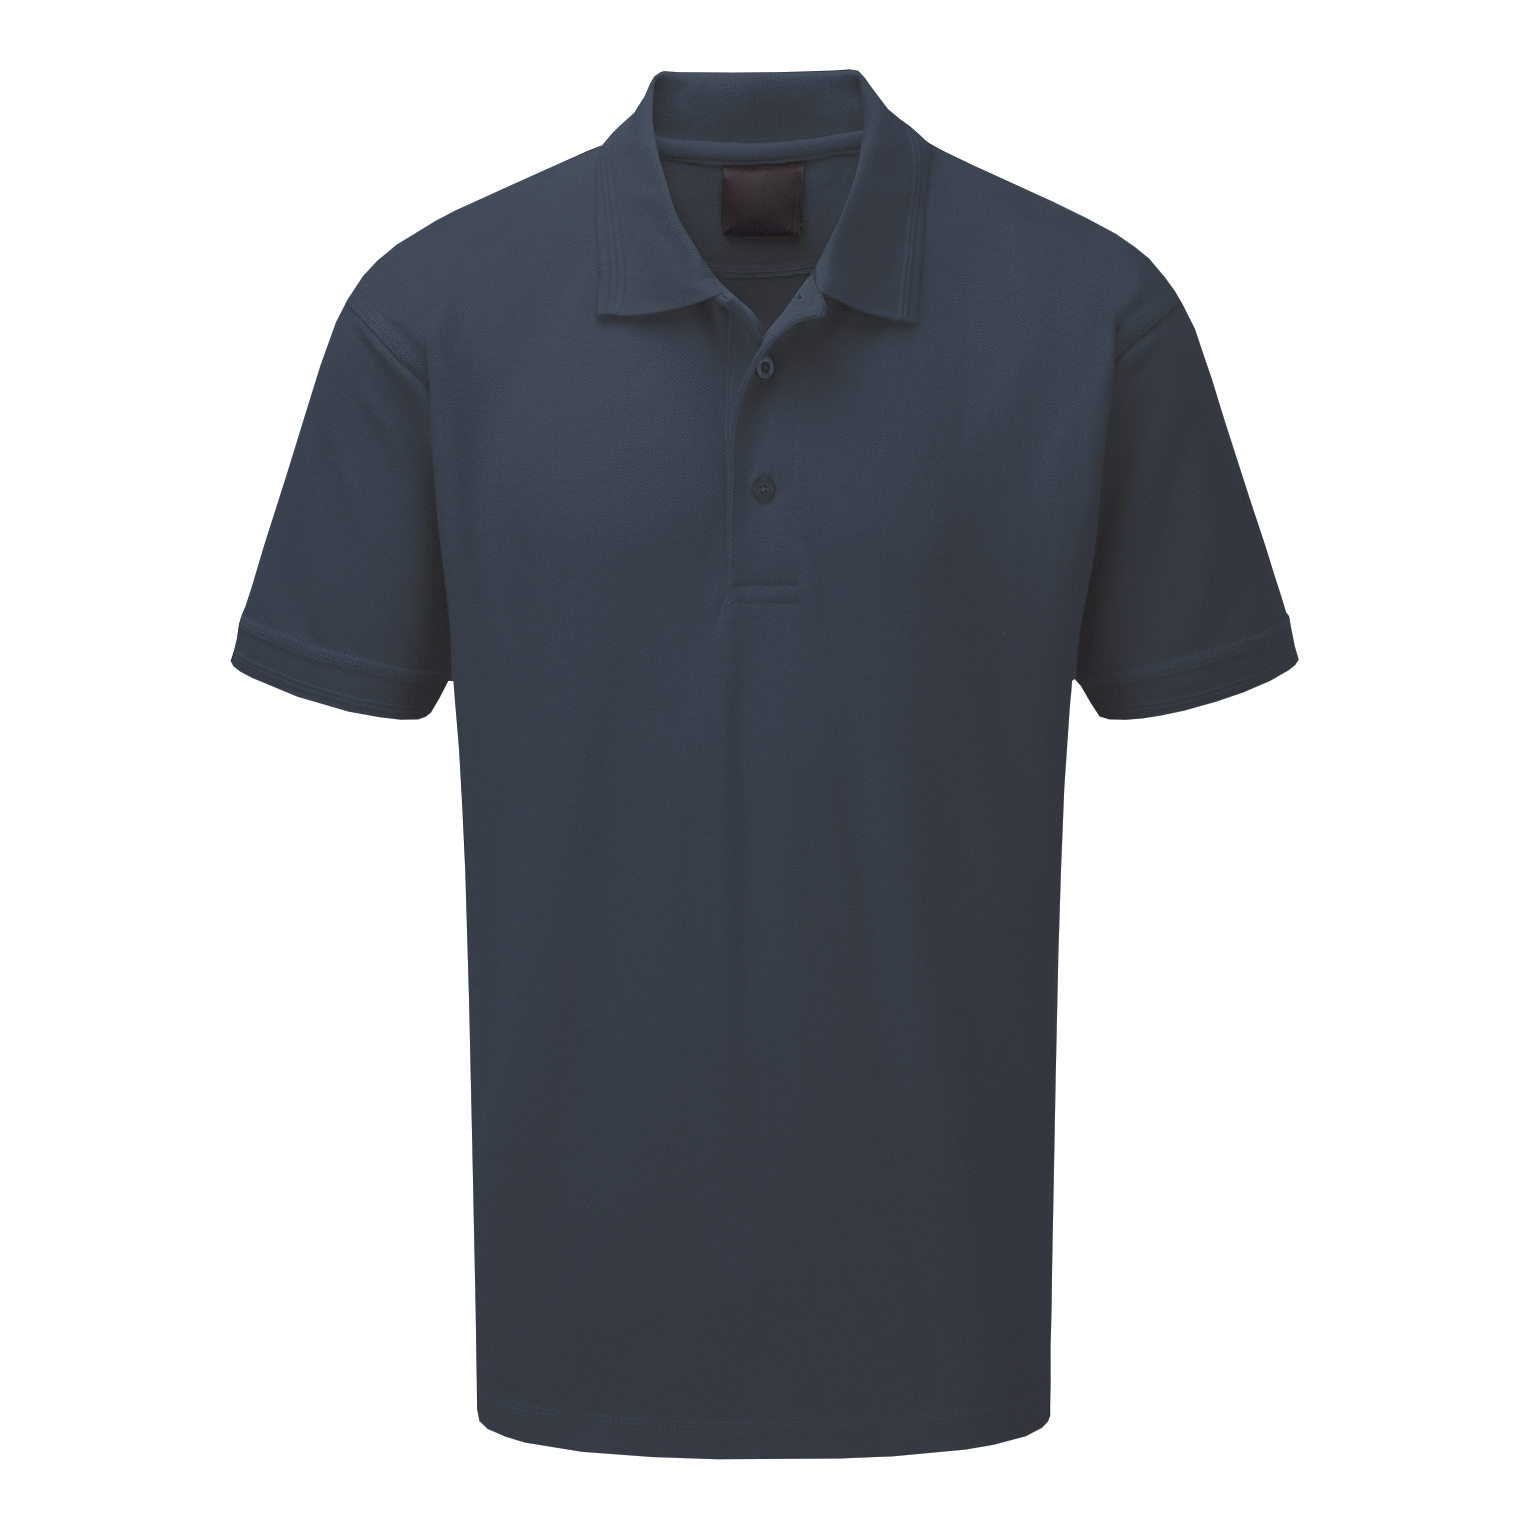 Premium Polo Shirt Triple Button 220gsm Polycotton Medium Graphite Ref CLPKSGYM *Approx 3 Day Leadtime*